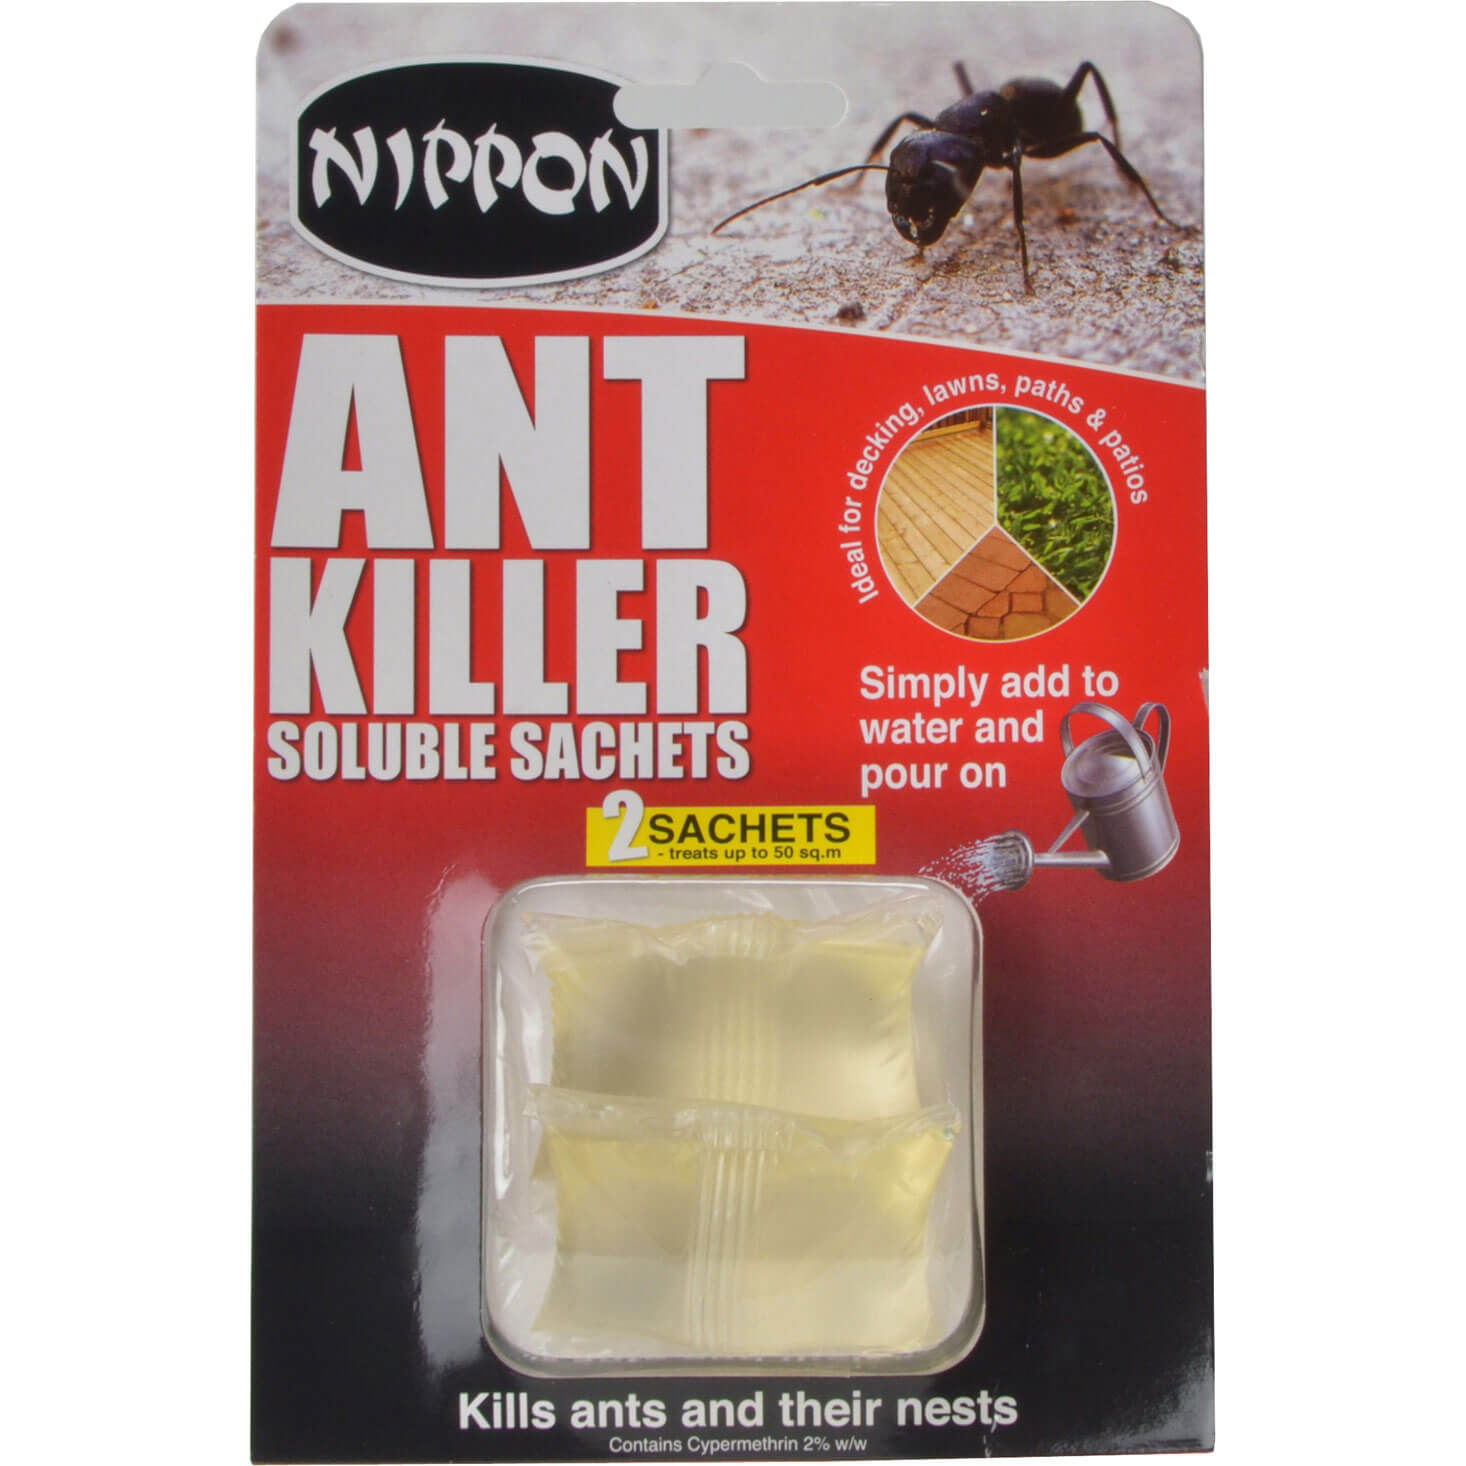 Image of Vitax Nippon Ant Killer in Concentrated Soluble Sachet Pack of 2